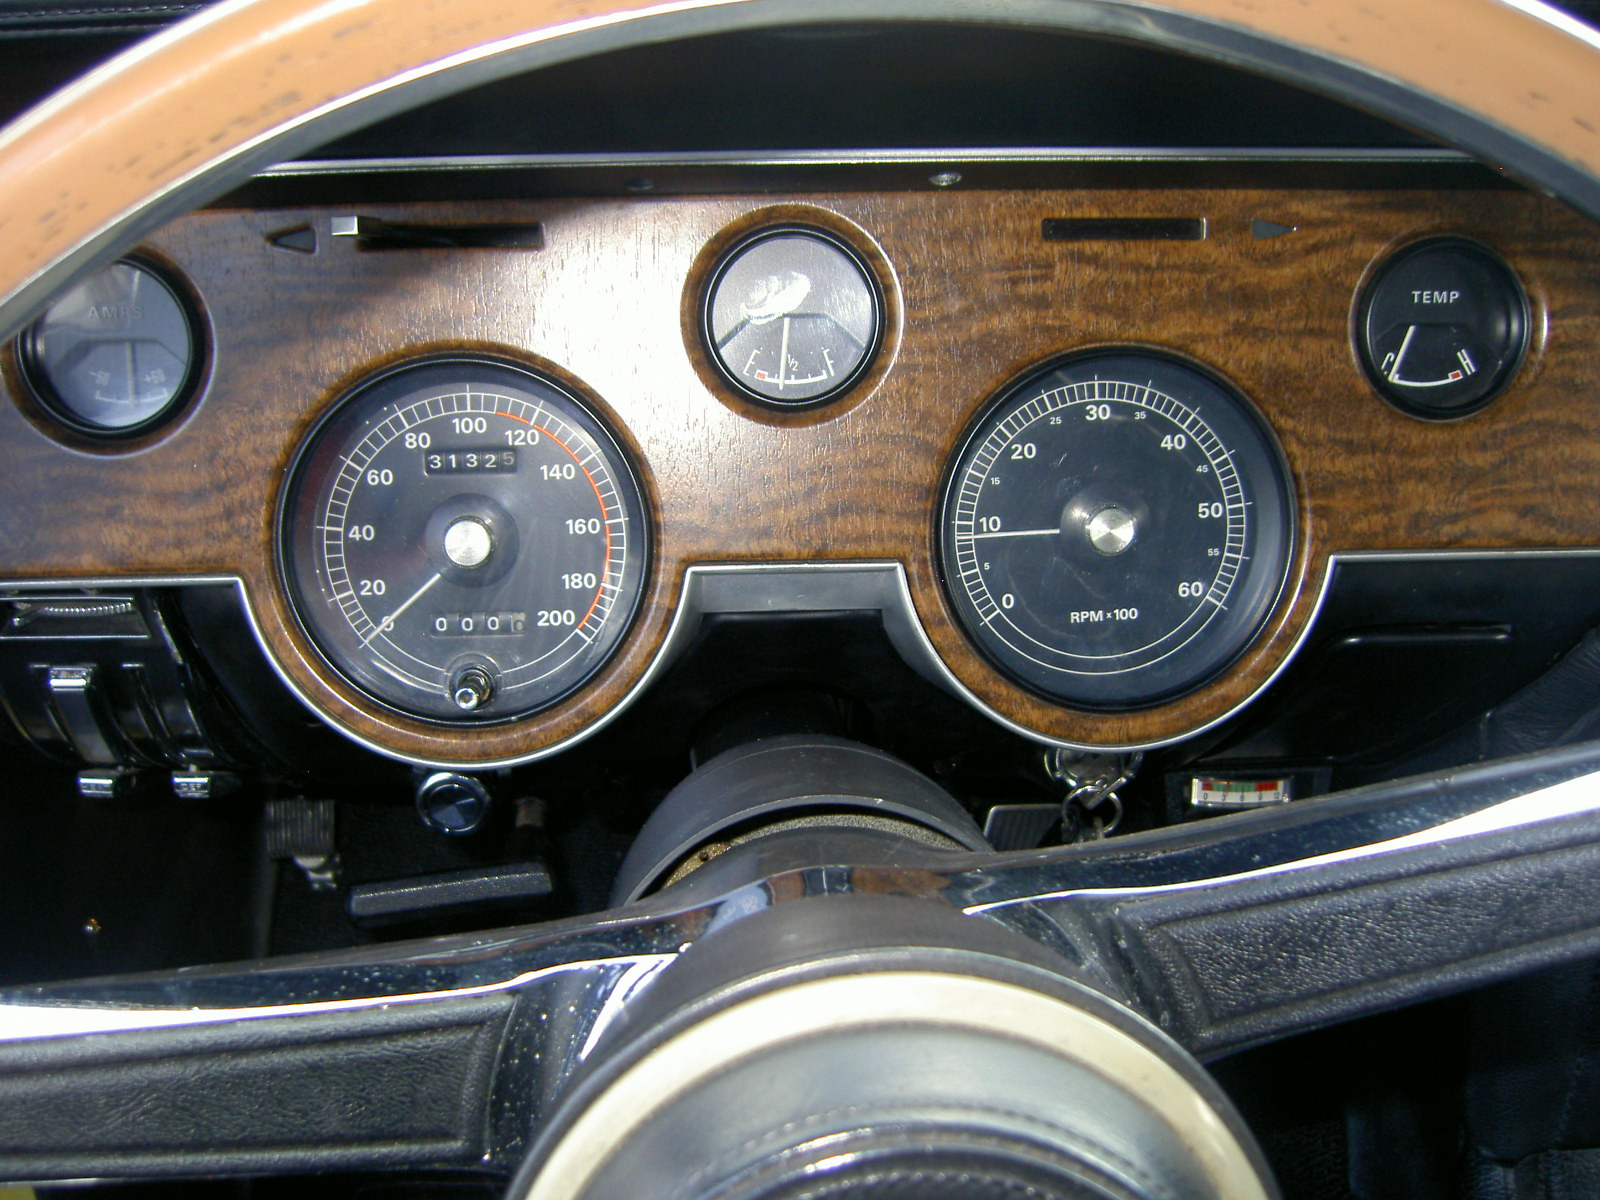 rocketman\u0027s classic cougar innovations68 xr7 tachometer converted for franc harperink